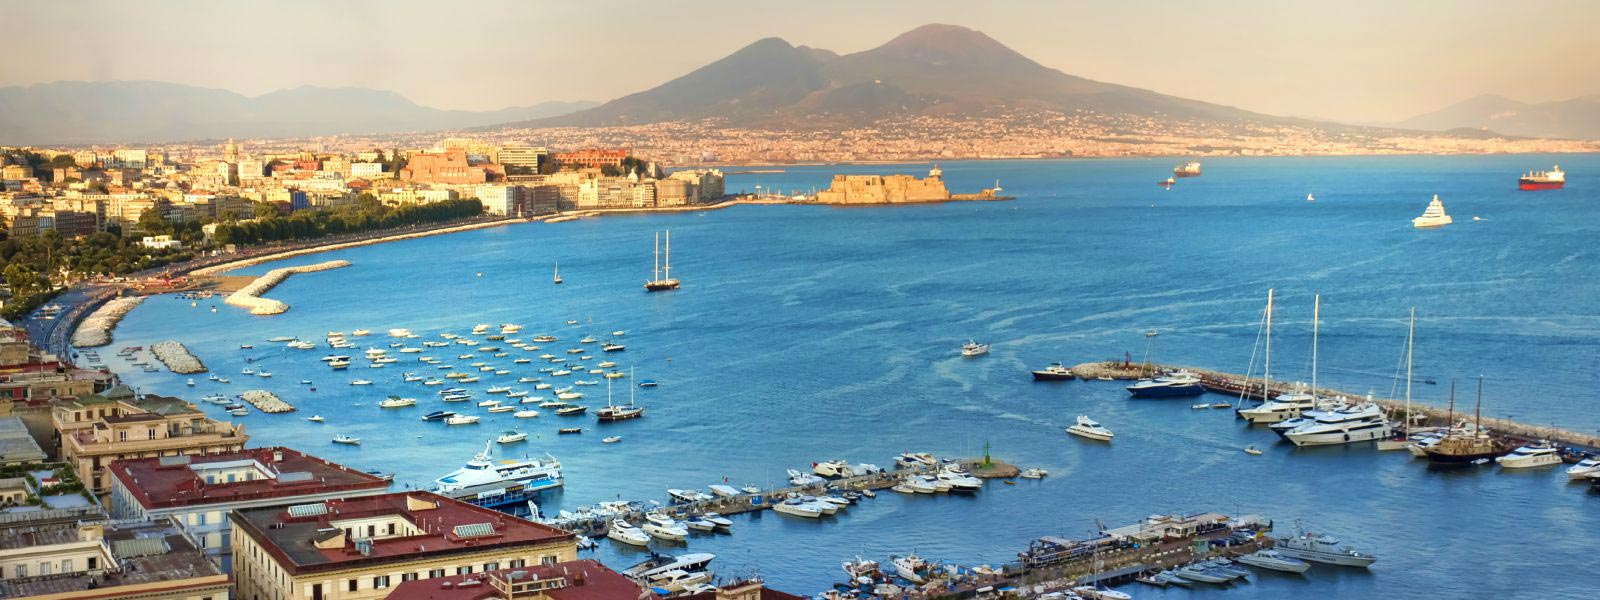 b airways flights uk to naples - photo#10